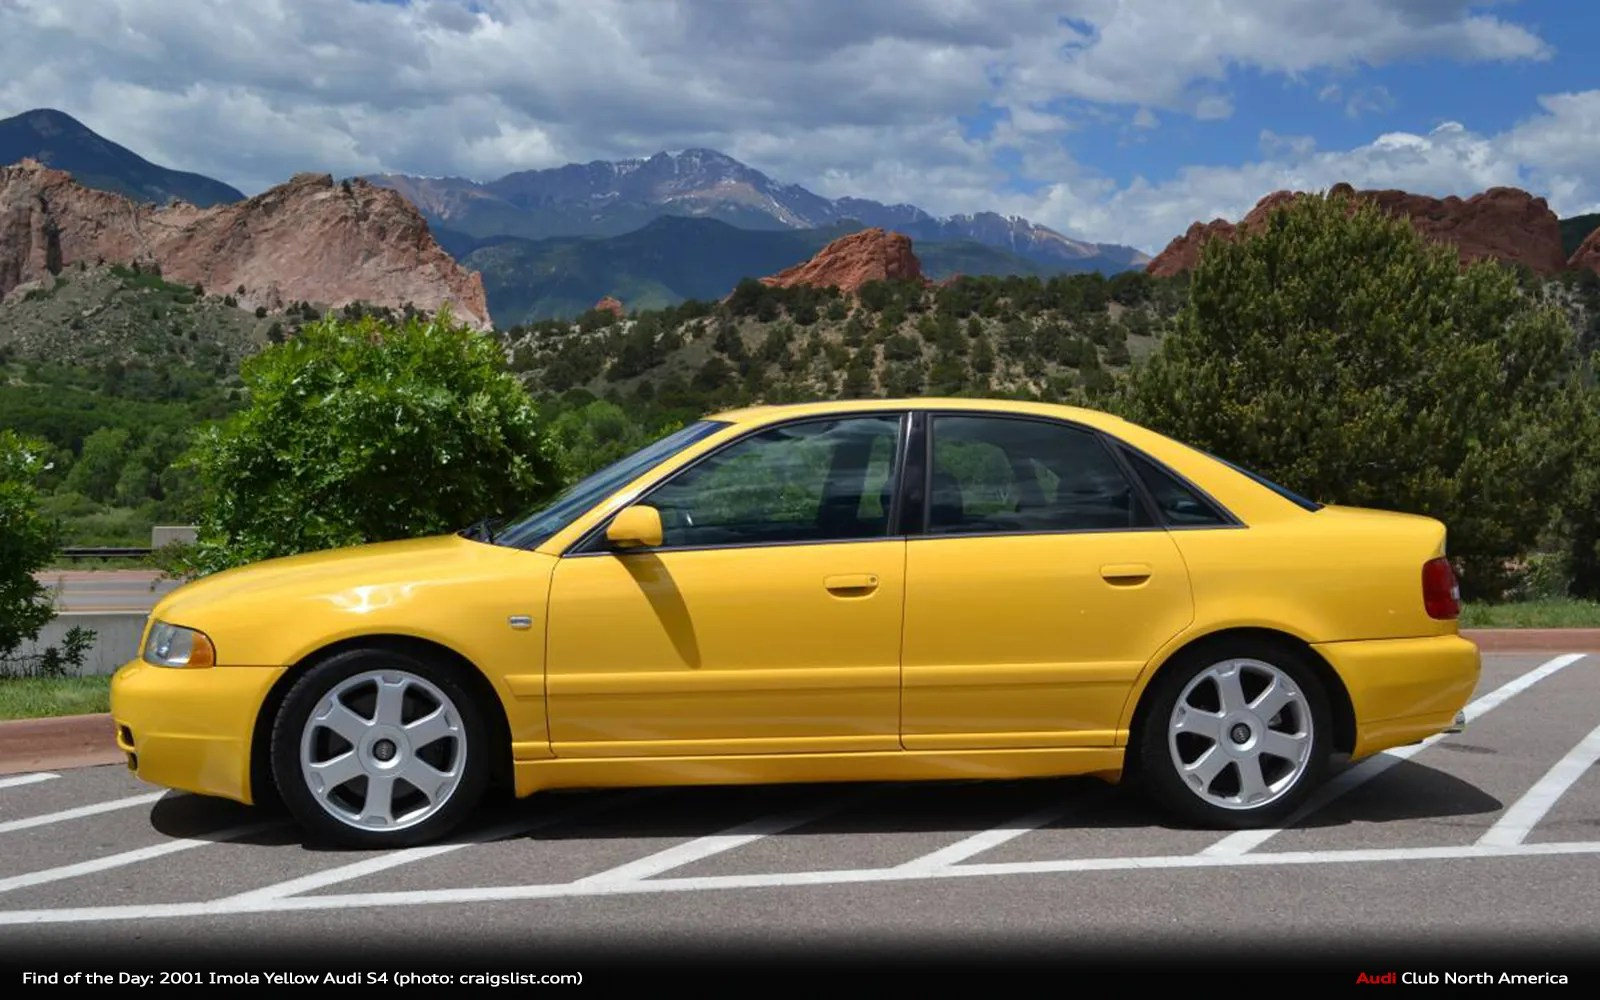 Find of the Day: 2001 Imola Yellow Audi S4